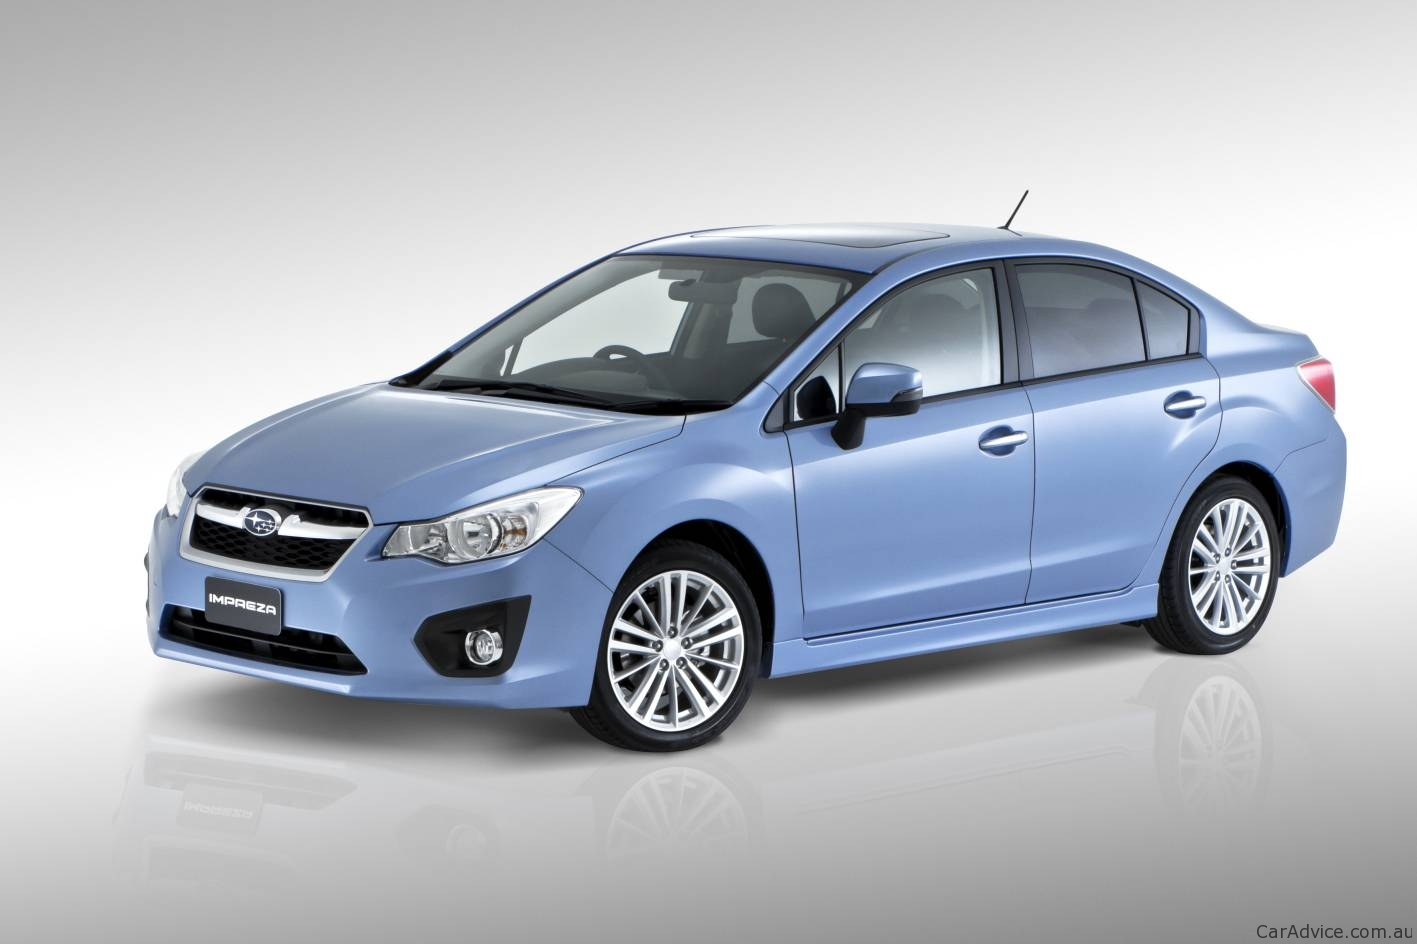 2012 Subaru Impreza At Australian International Motor Show